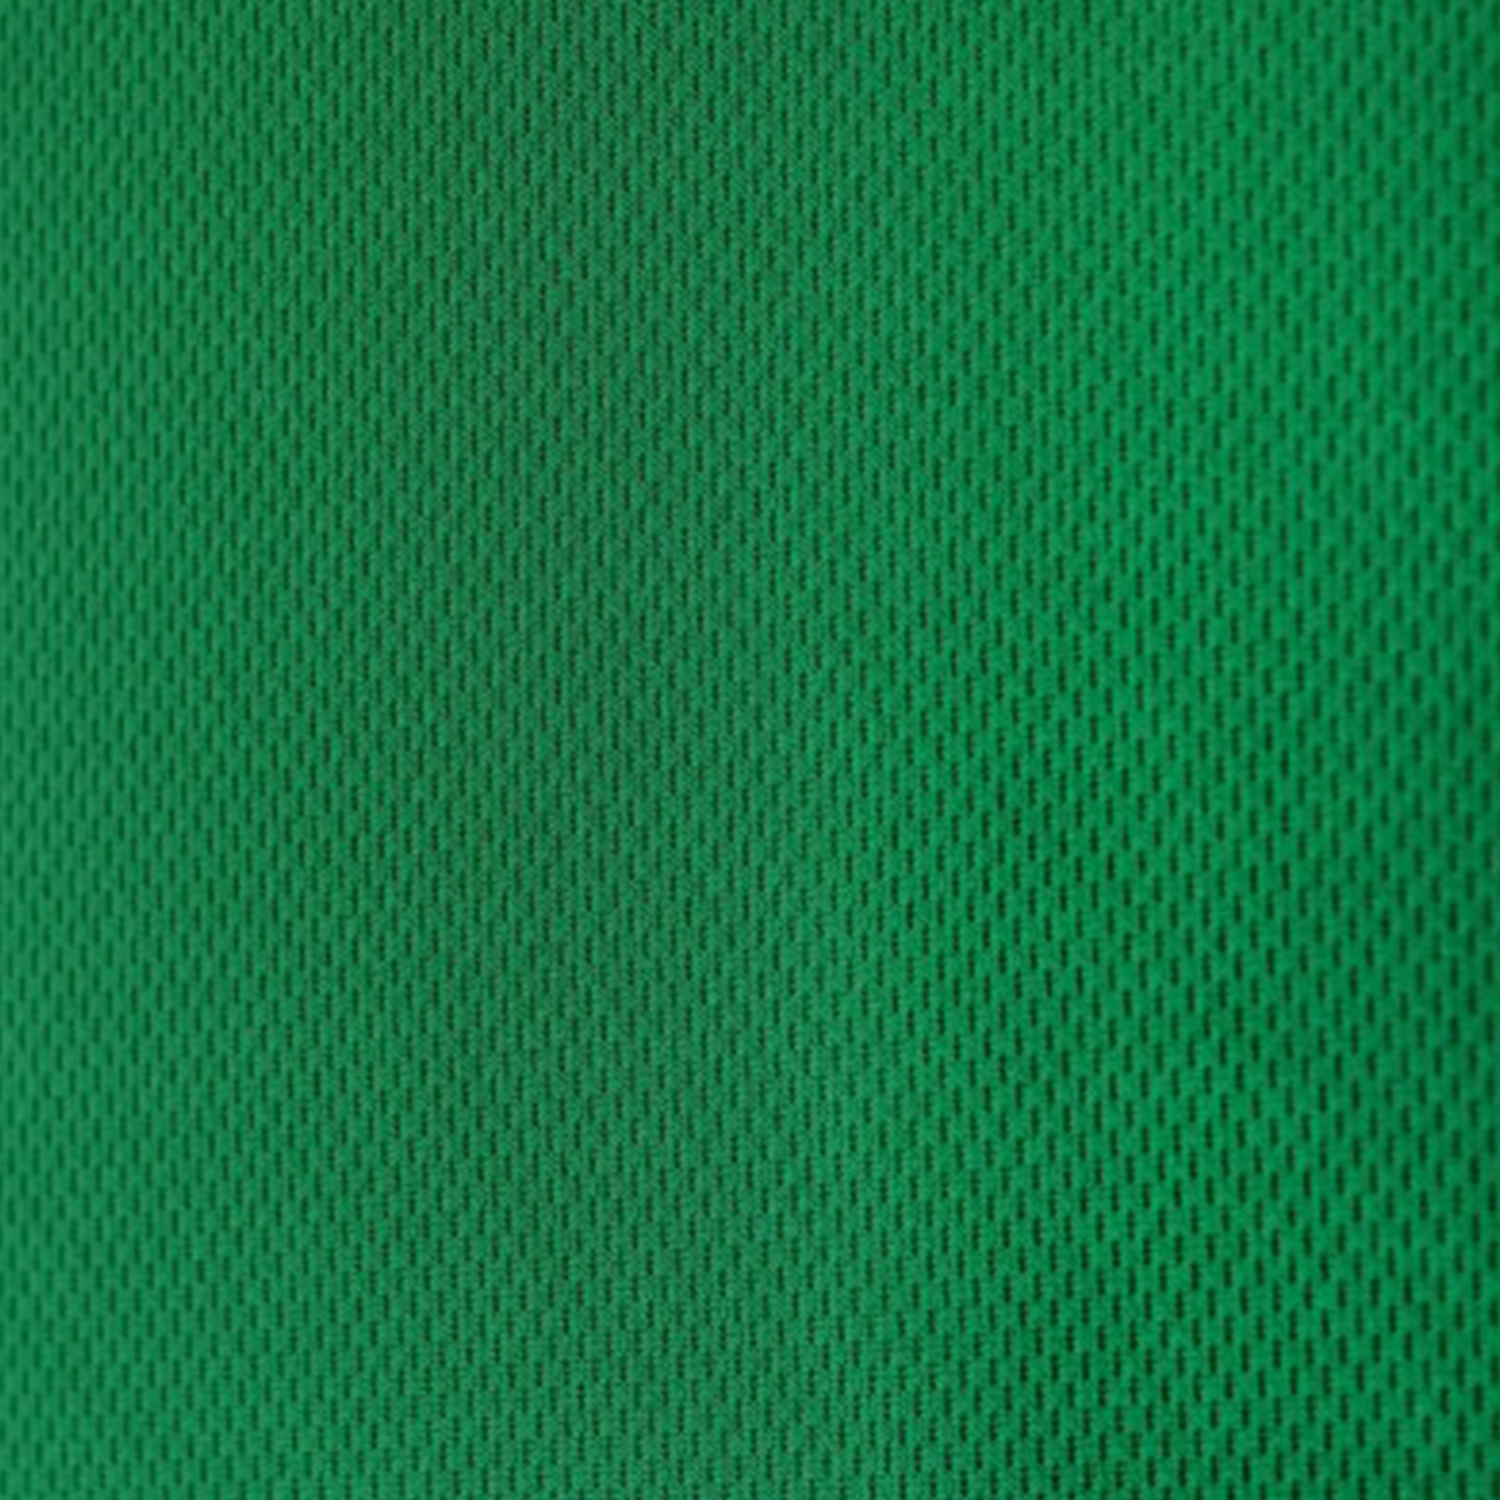 Kelly Green Flat Back Dimple Mesh Fabric